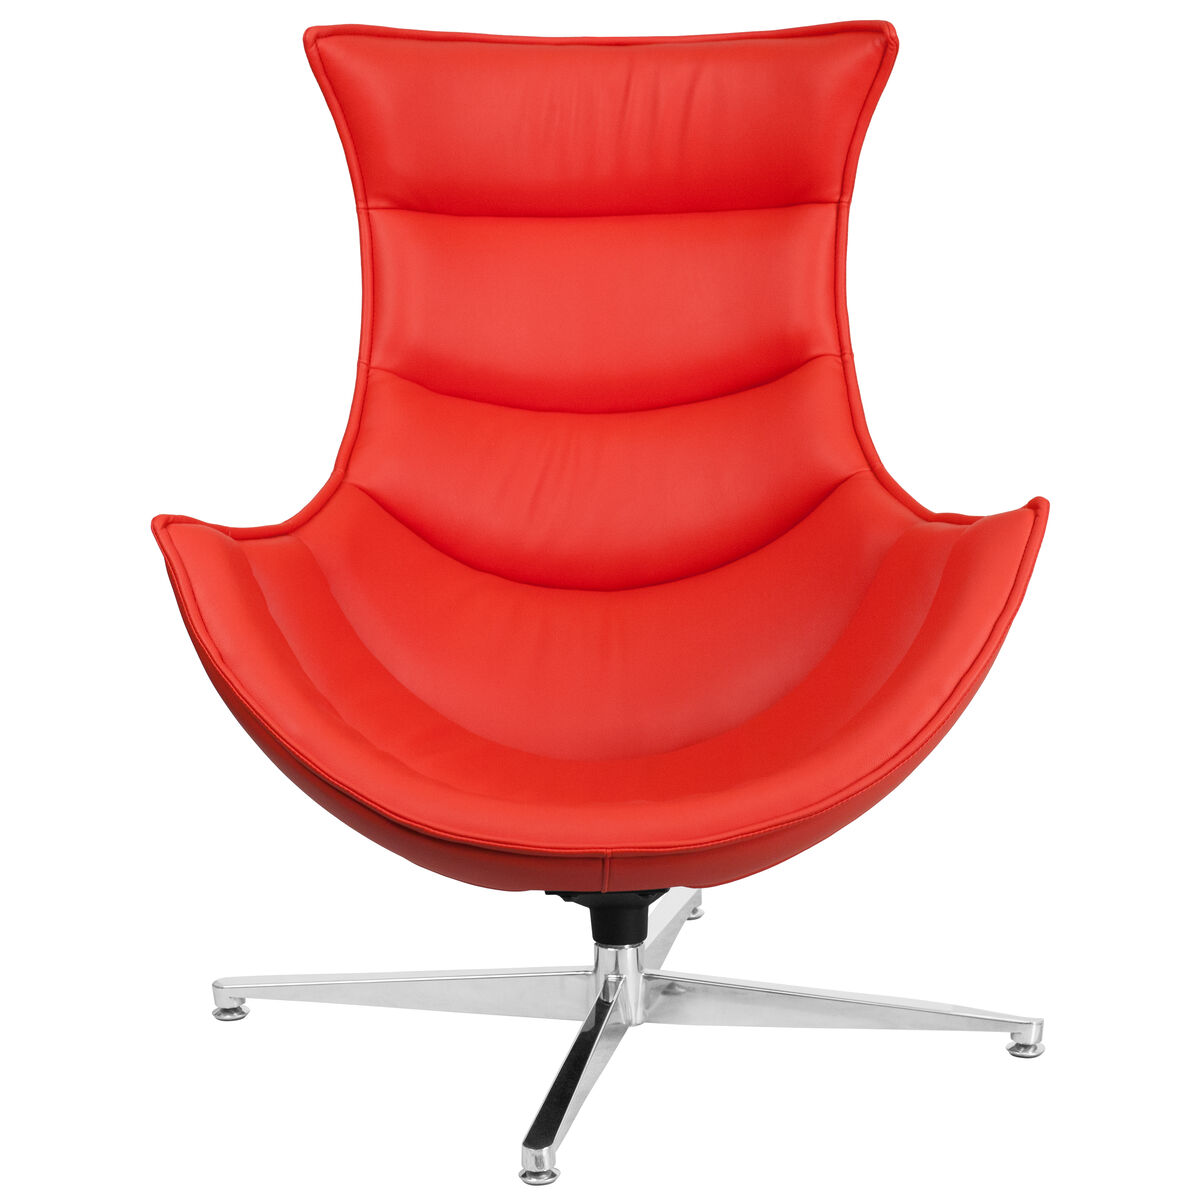 Patio Furniture Southern New Jersey: Red Leather Swivel Cocoon Chair